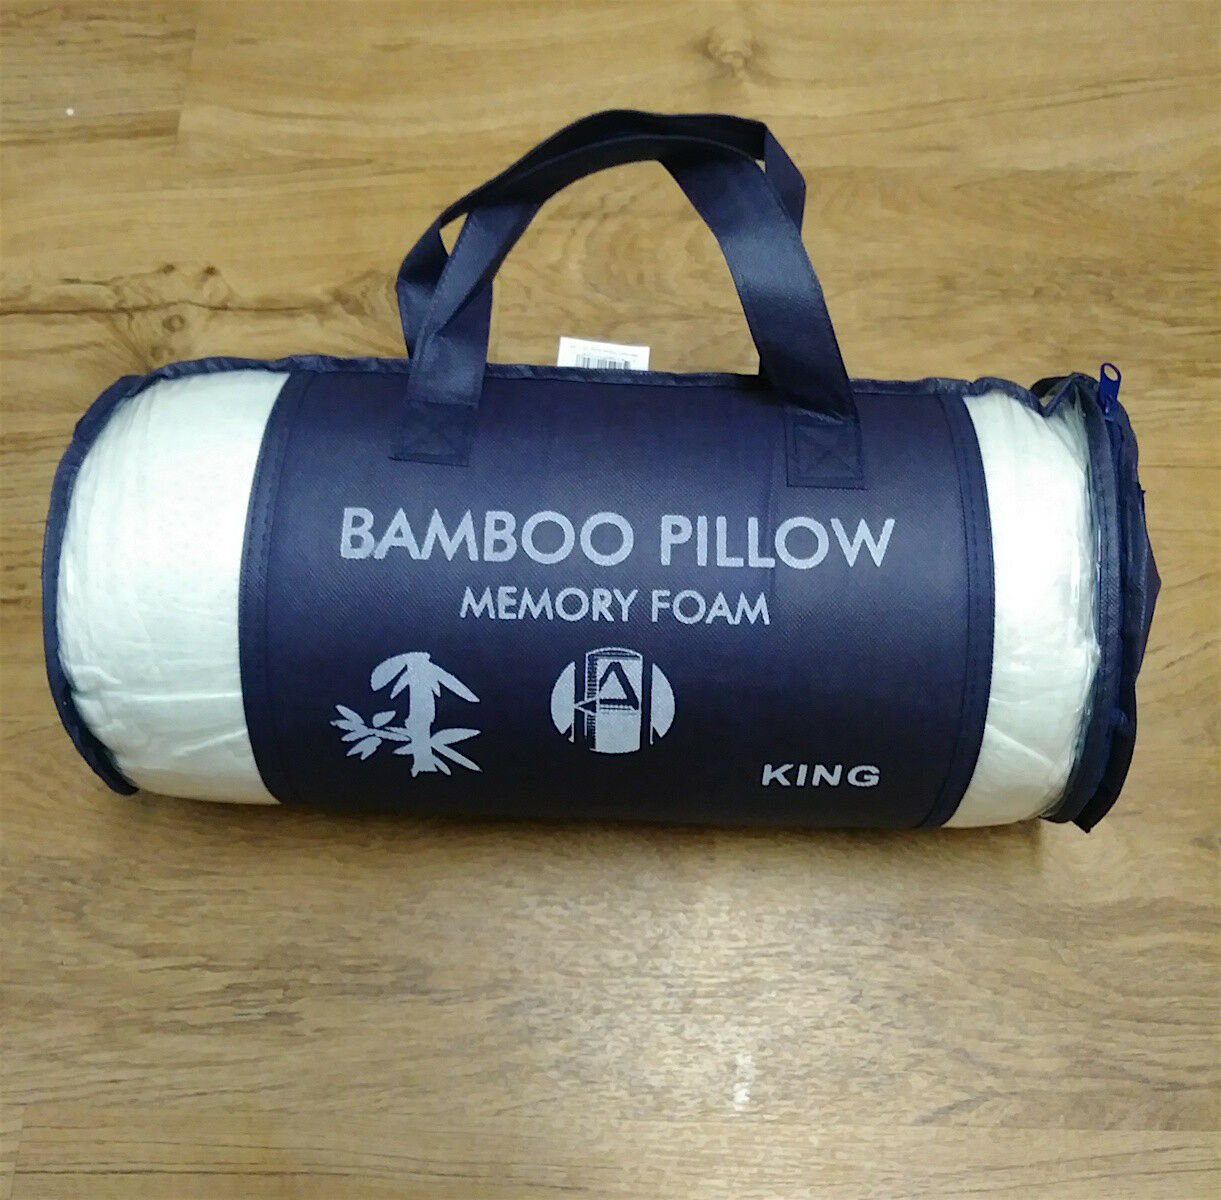 Bamboo Memory Foam Pillow- King Size- Brand New in Package